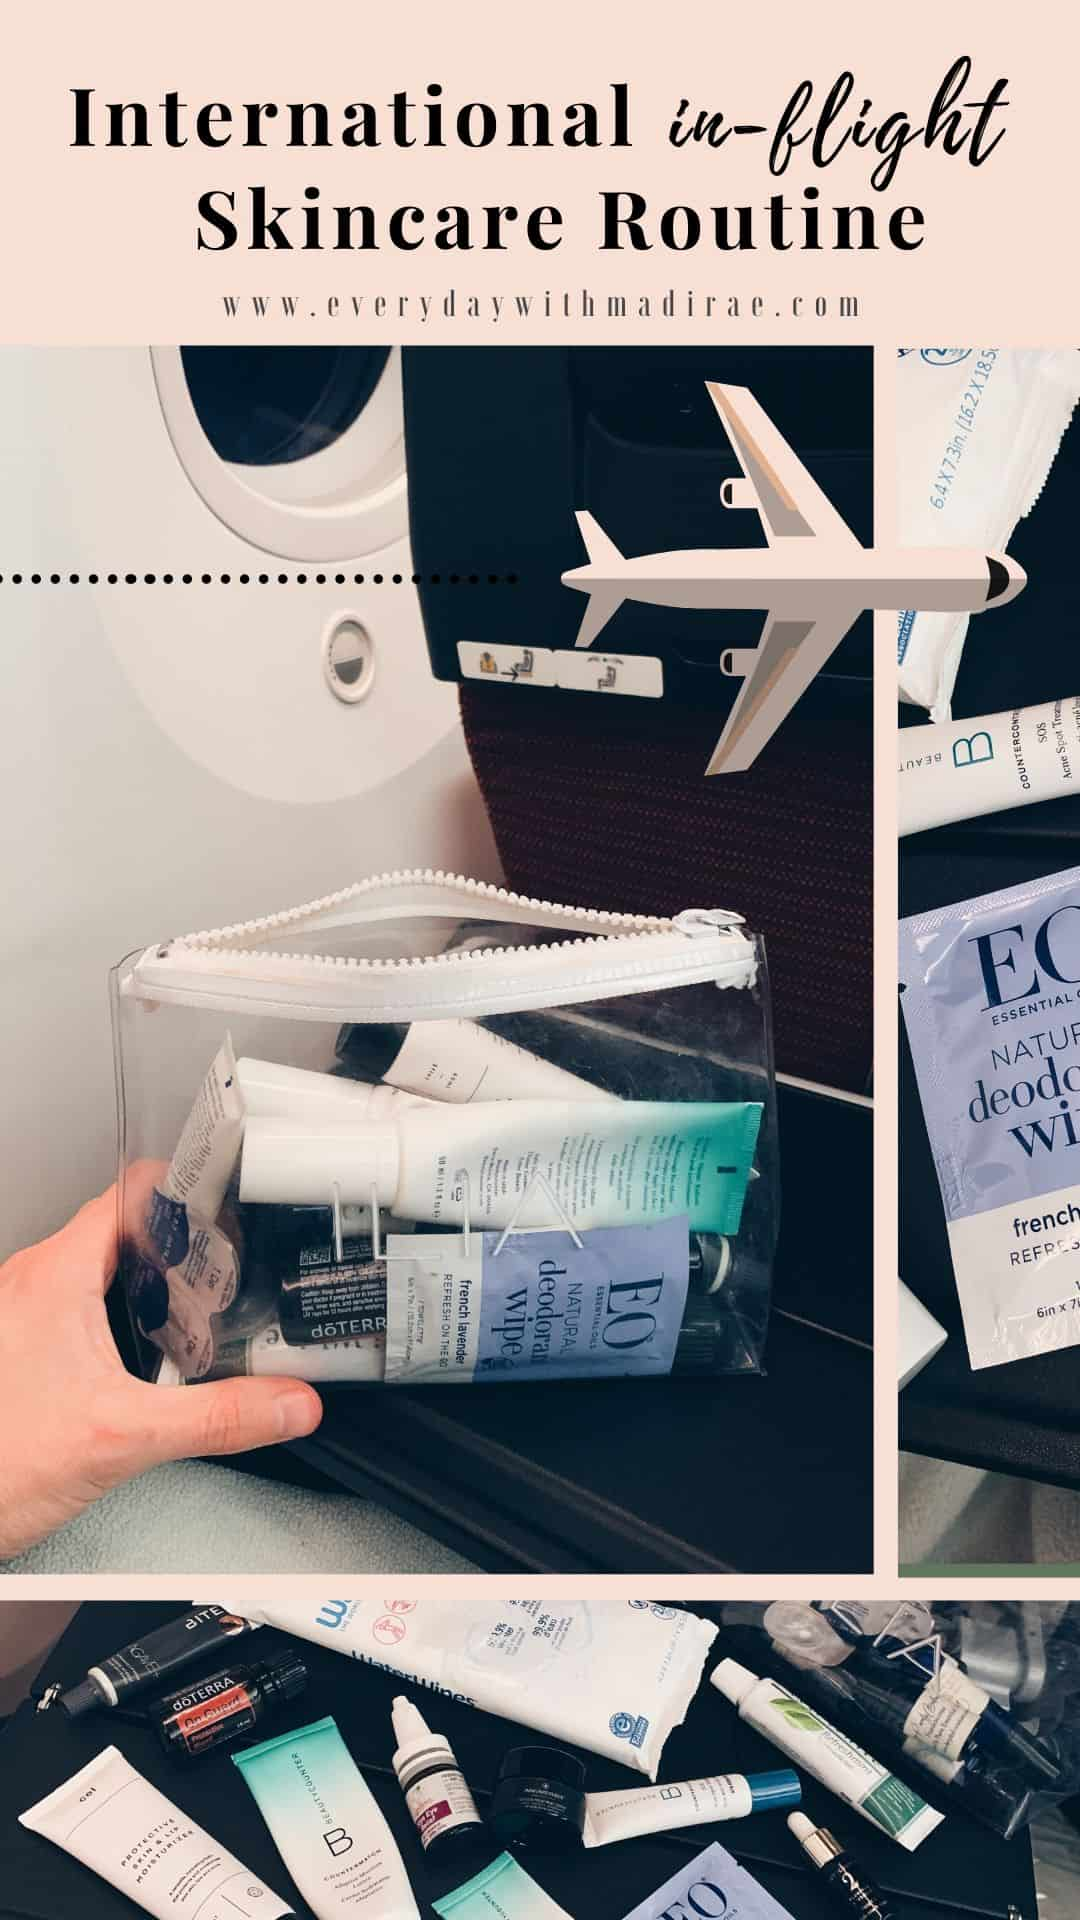 Sharing my international in-flight skincare routine & beauty essentials to survive a long haul flight, prevent airplane acne, skin dehydration, & more!